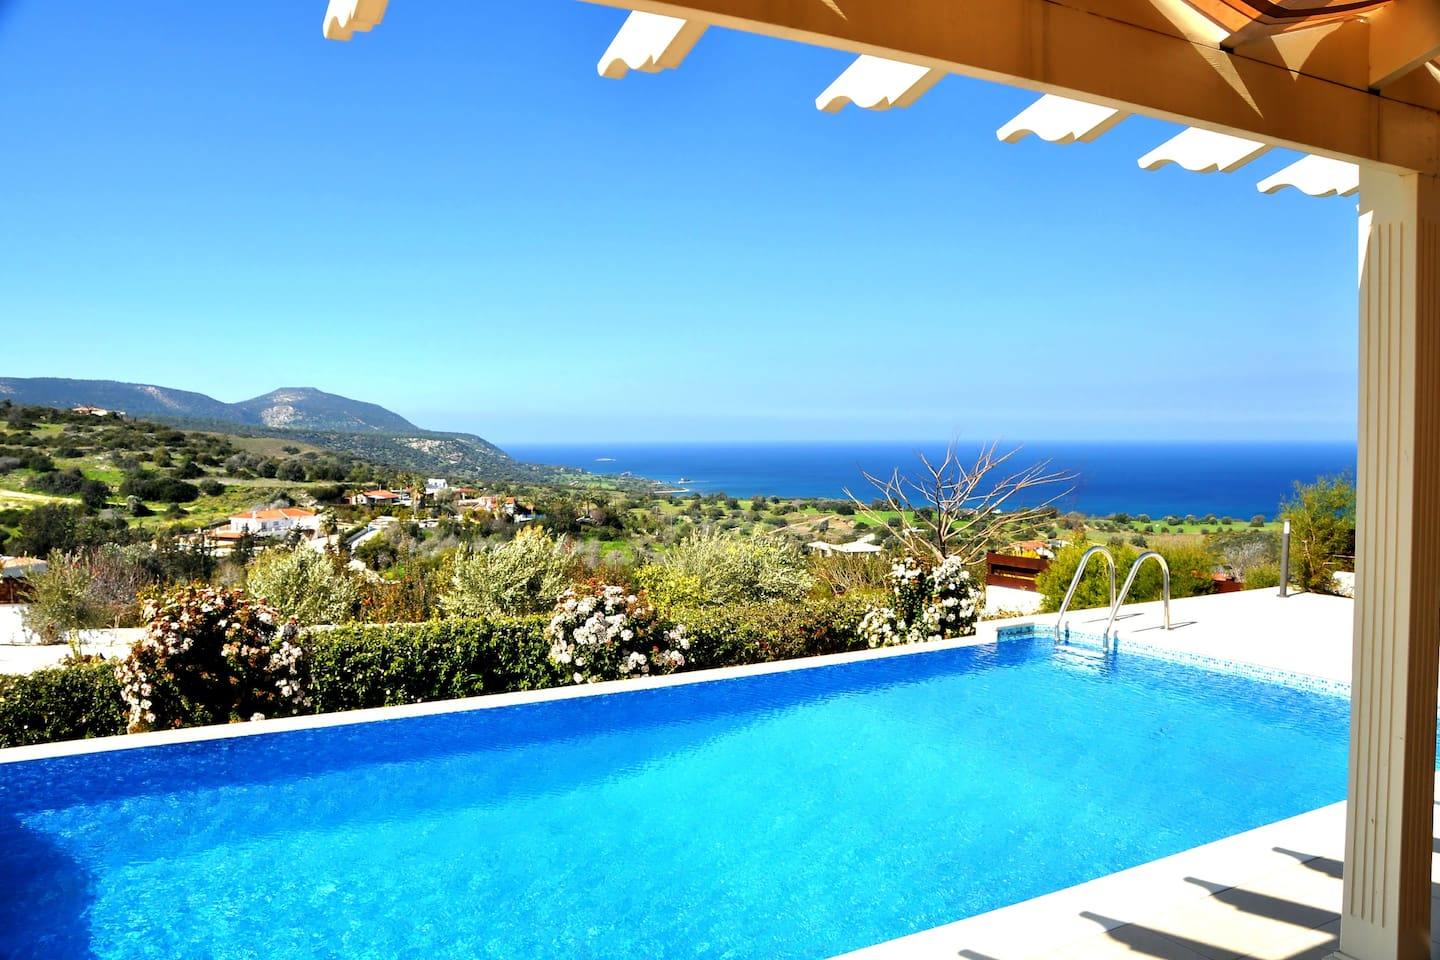 View from the Verandah of the Akamas Peninsula, the Baths of Aphrodite and Chrysochou Bay